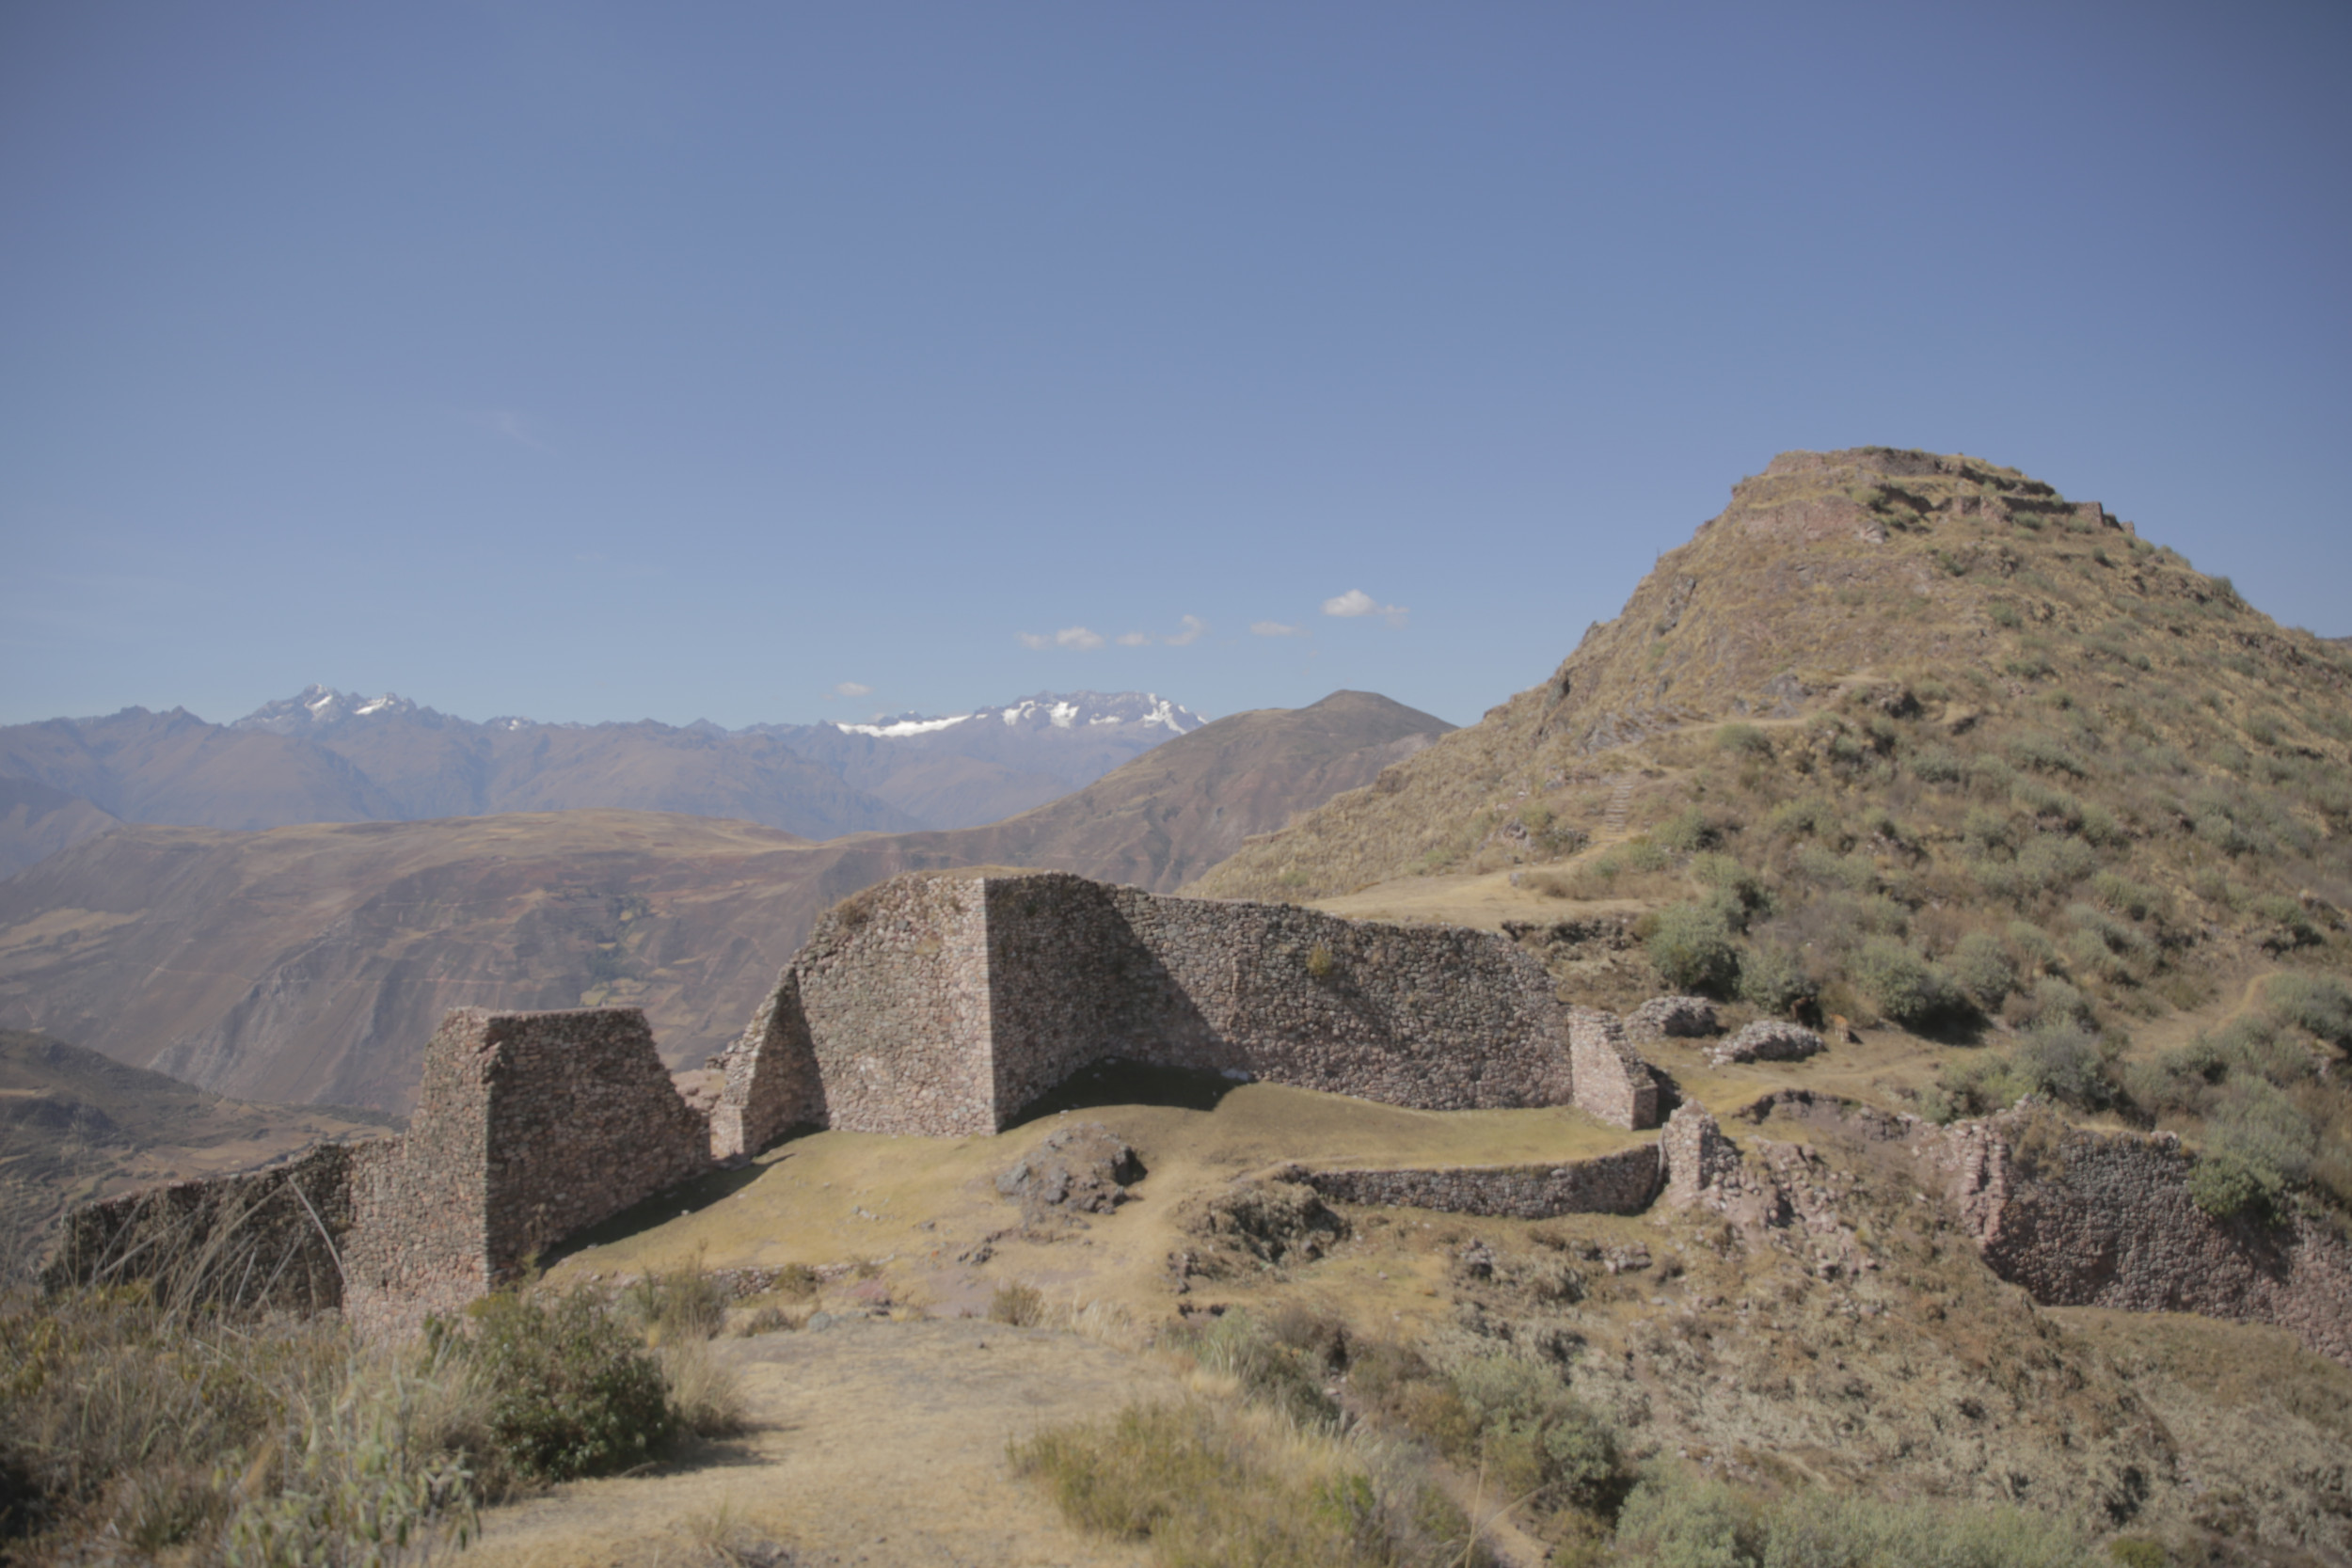 Ancient Inca city located 13,000 feet high in Peruvian Andes revealed by laser technology